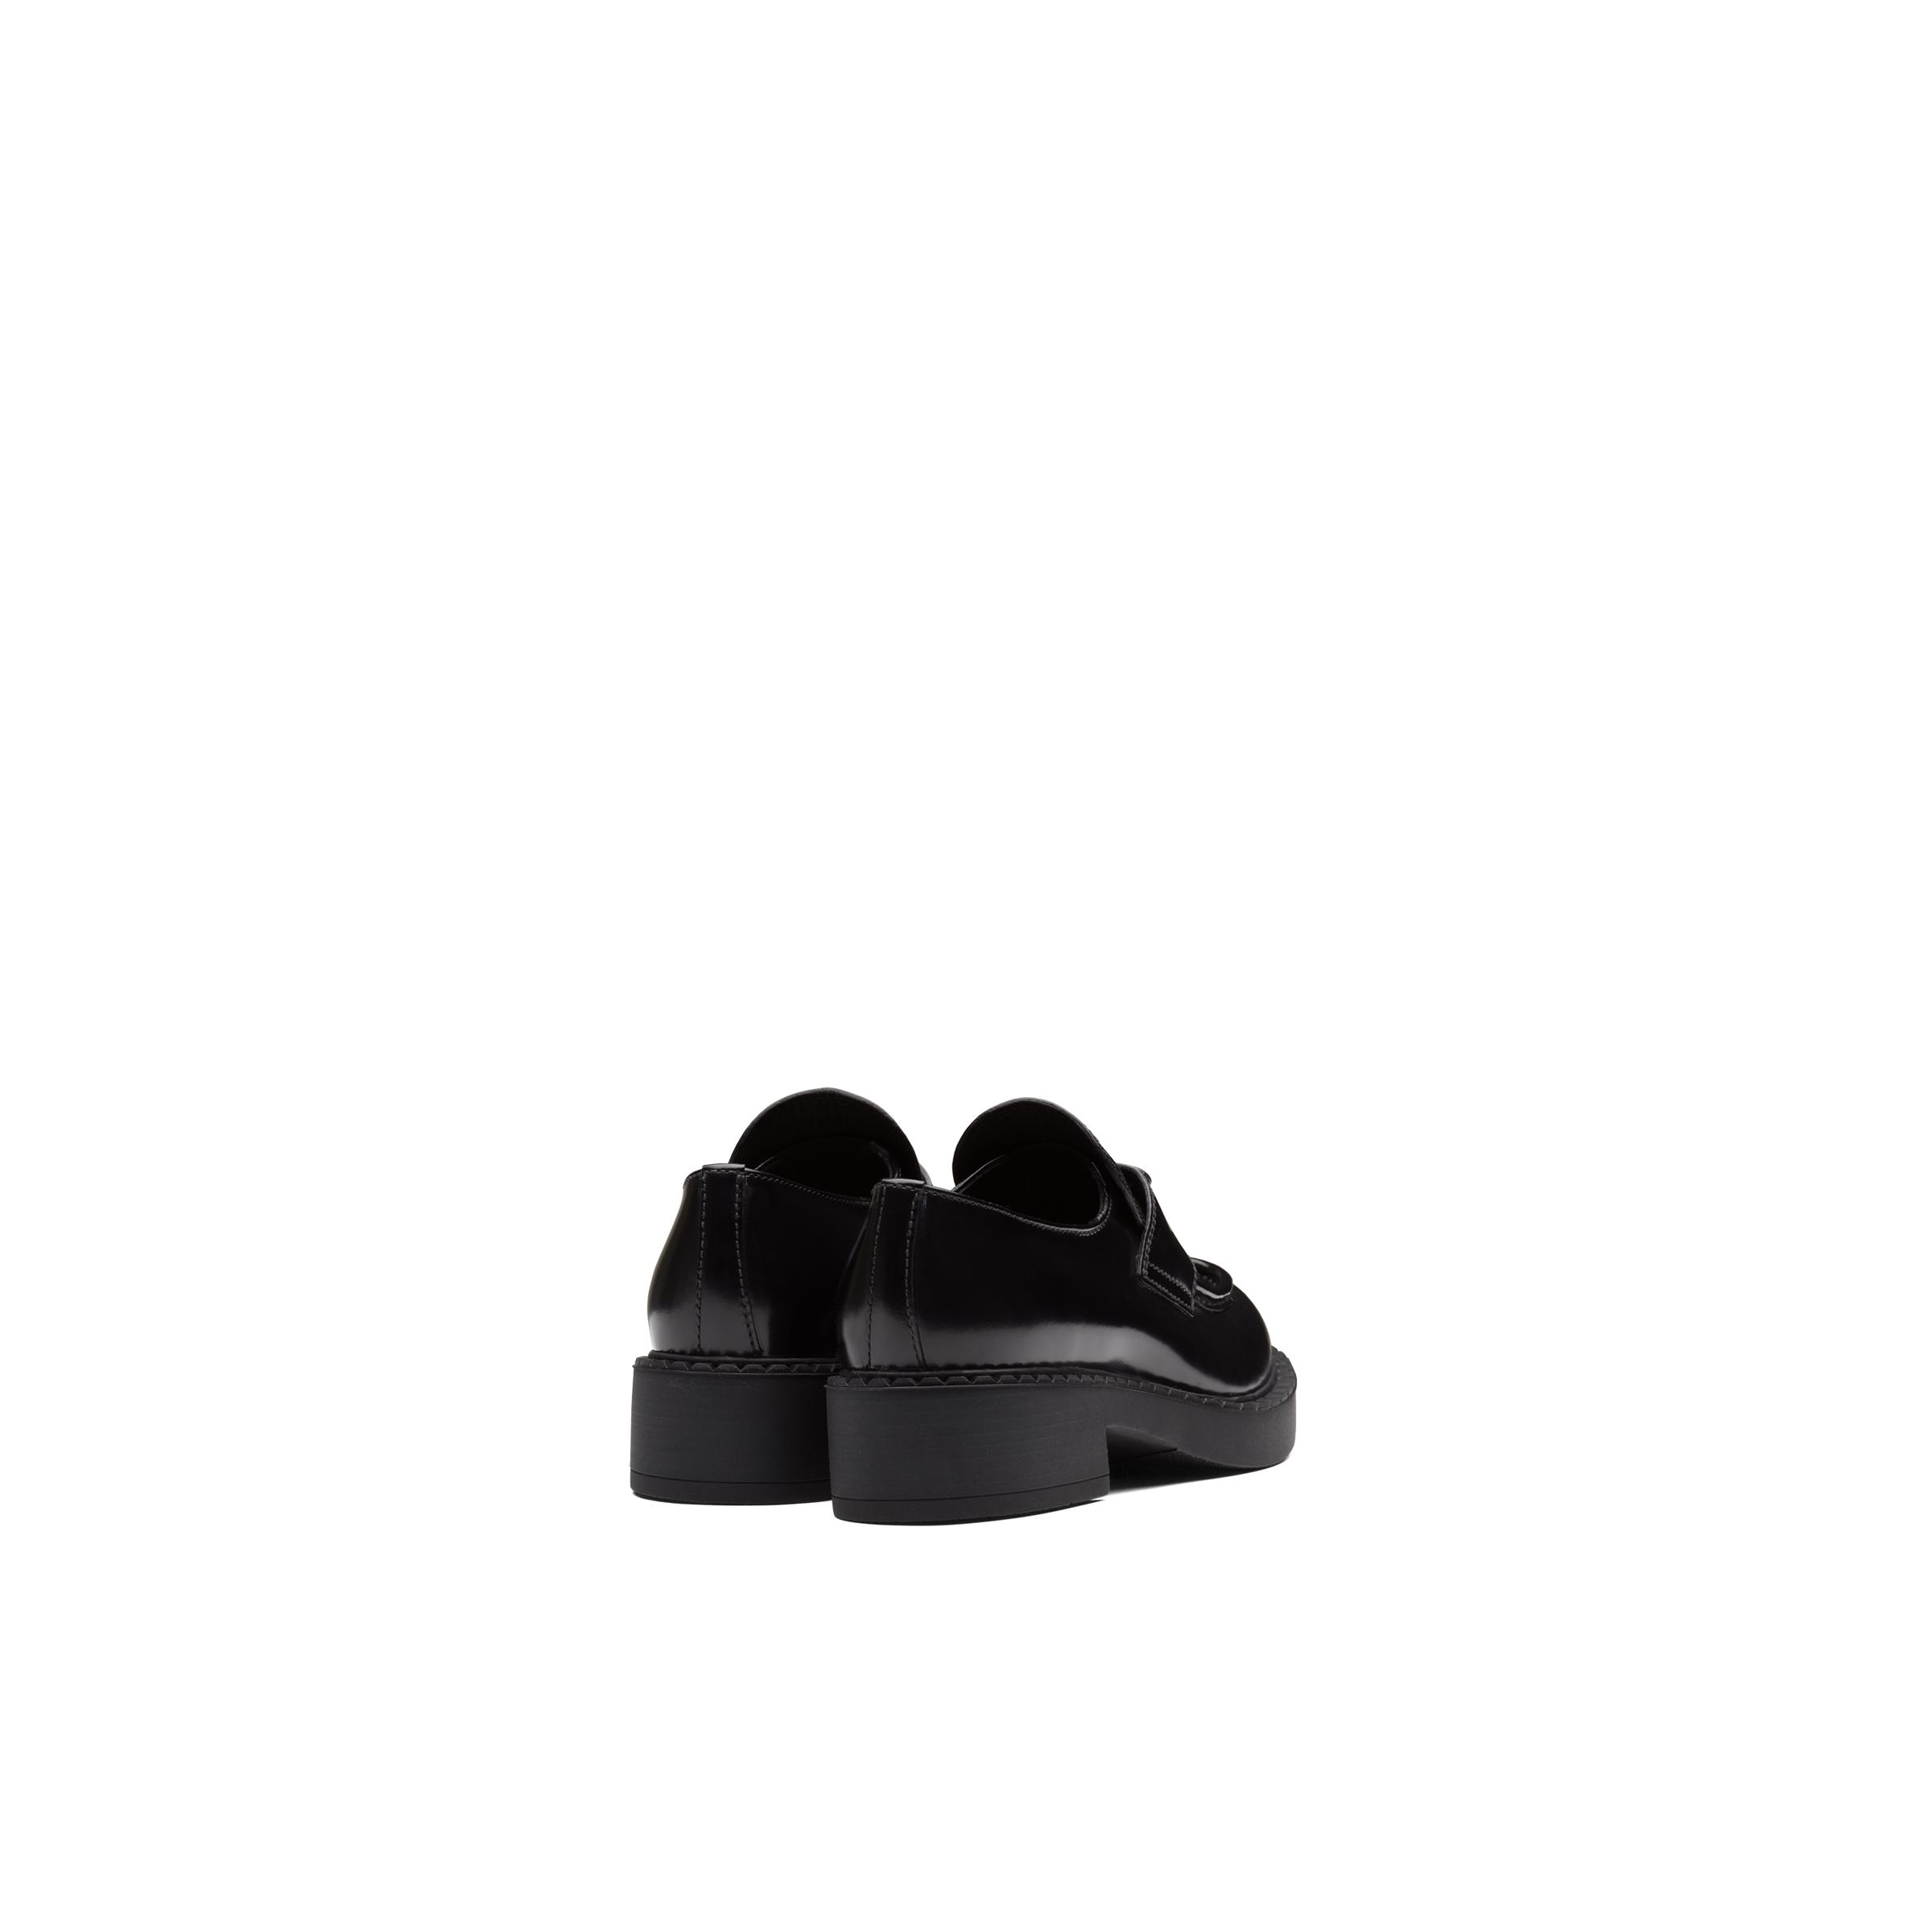 Brushed Leather Loafers Women Black 3